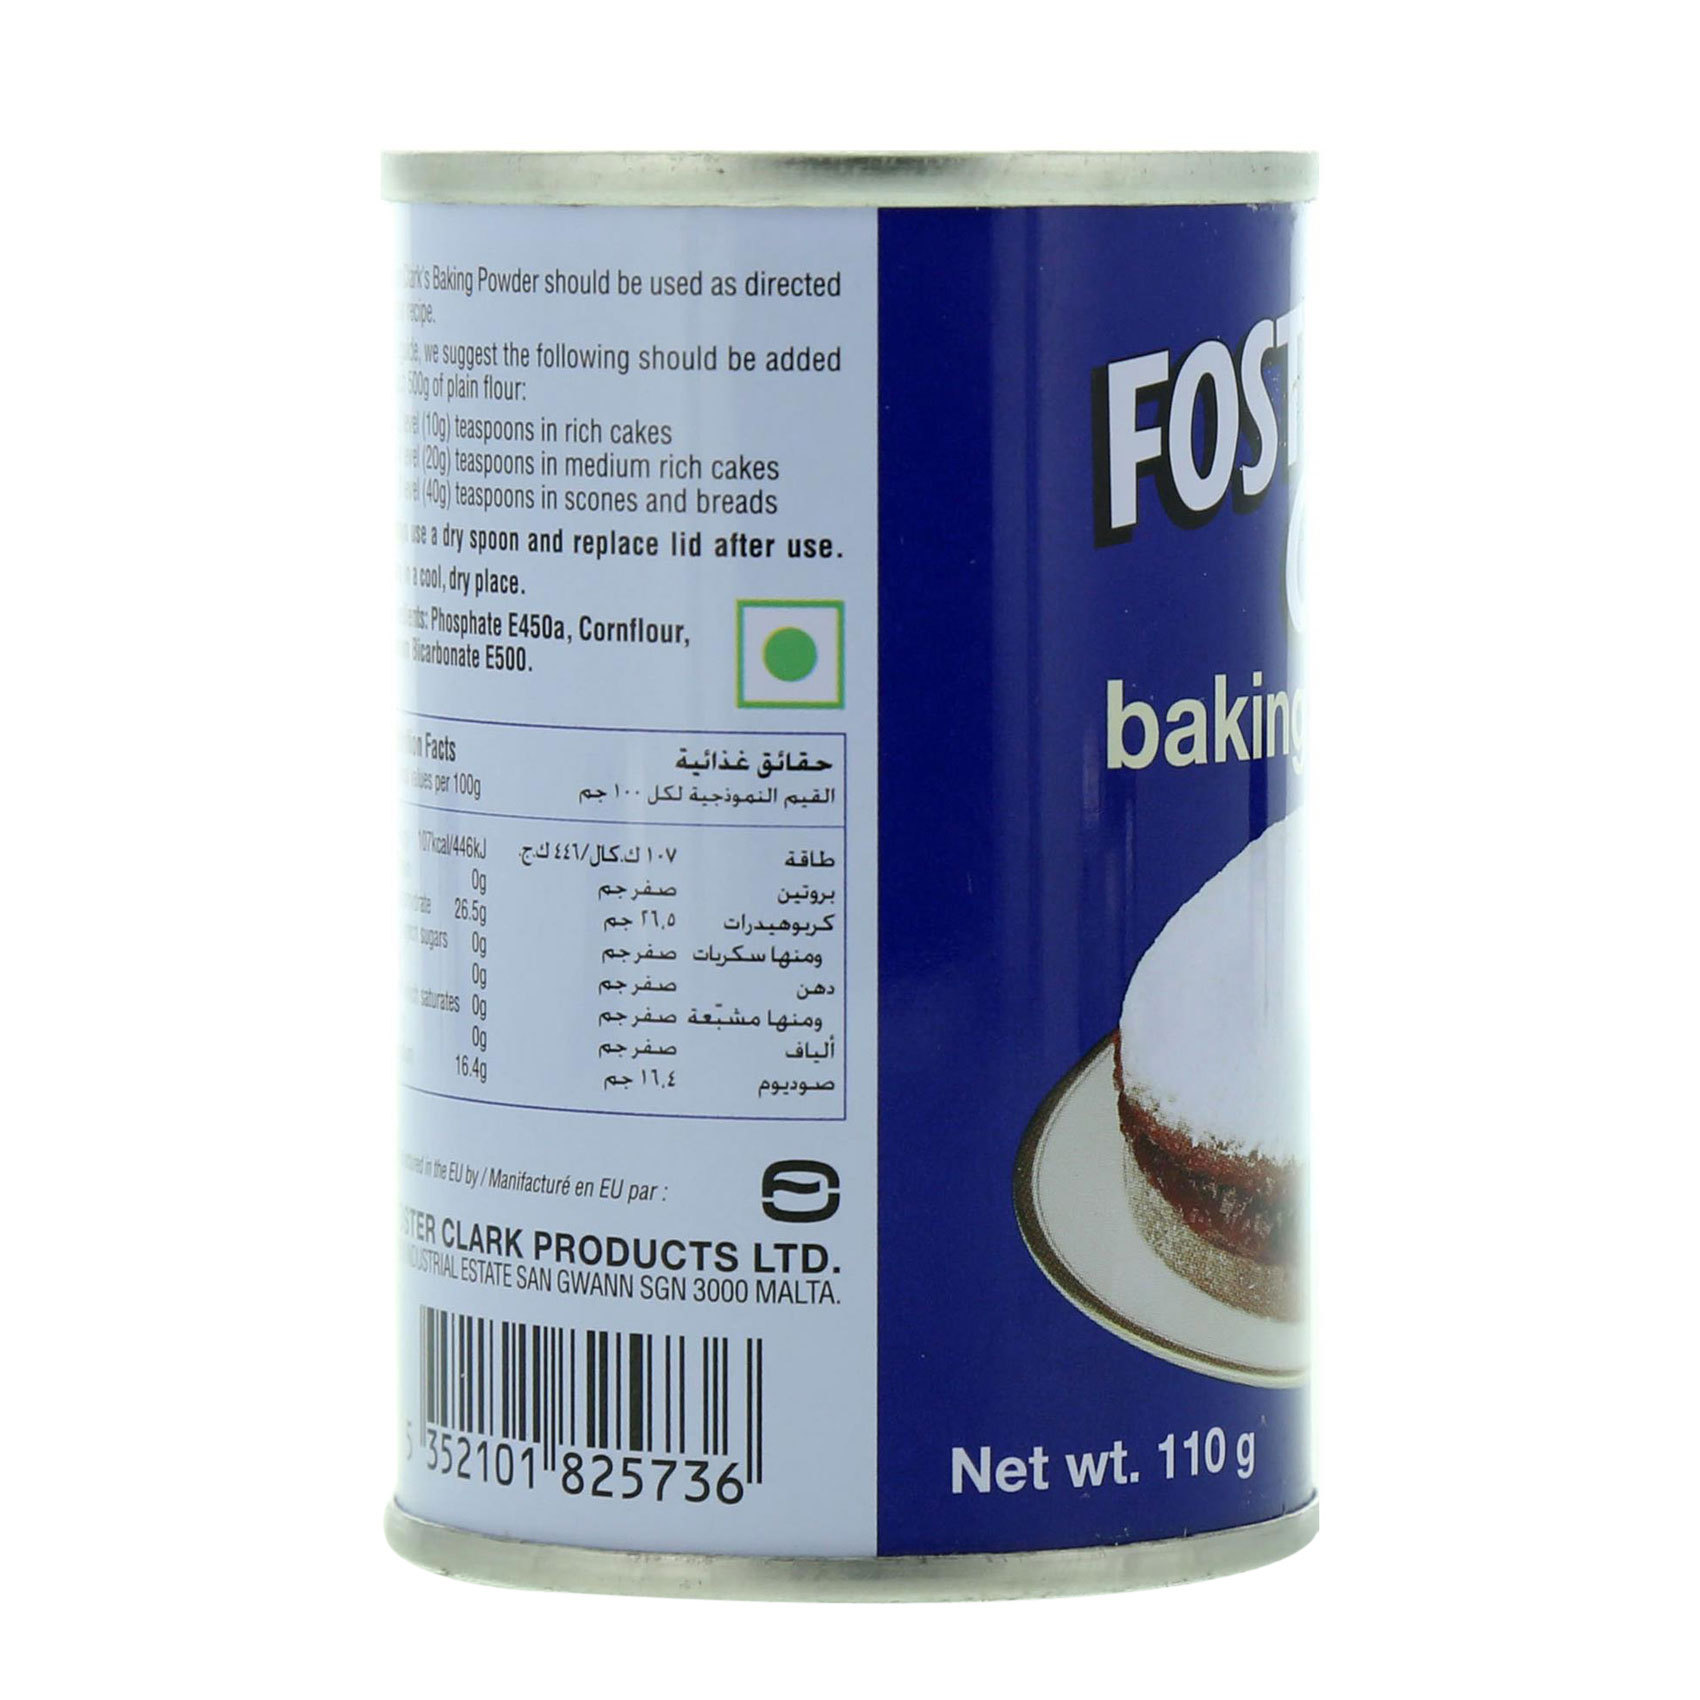 FOSTER CLARK BAKING POWDER 110G